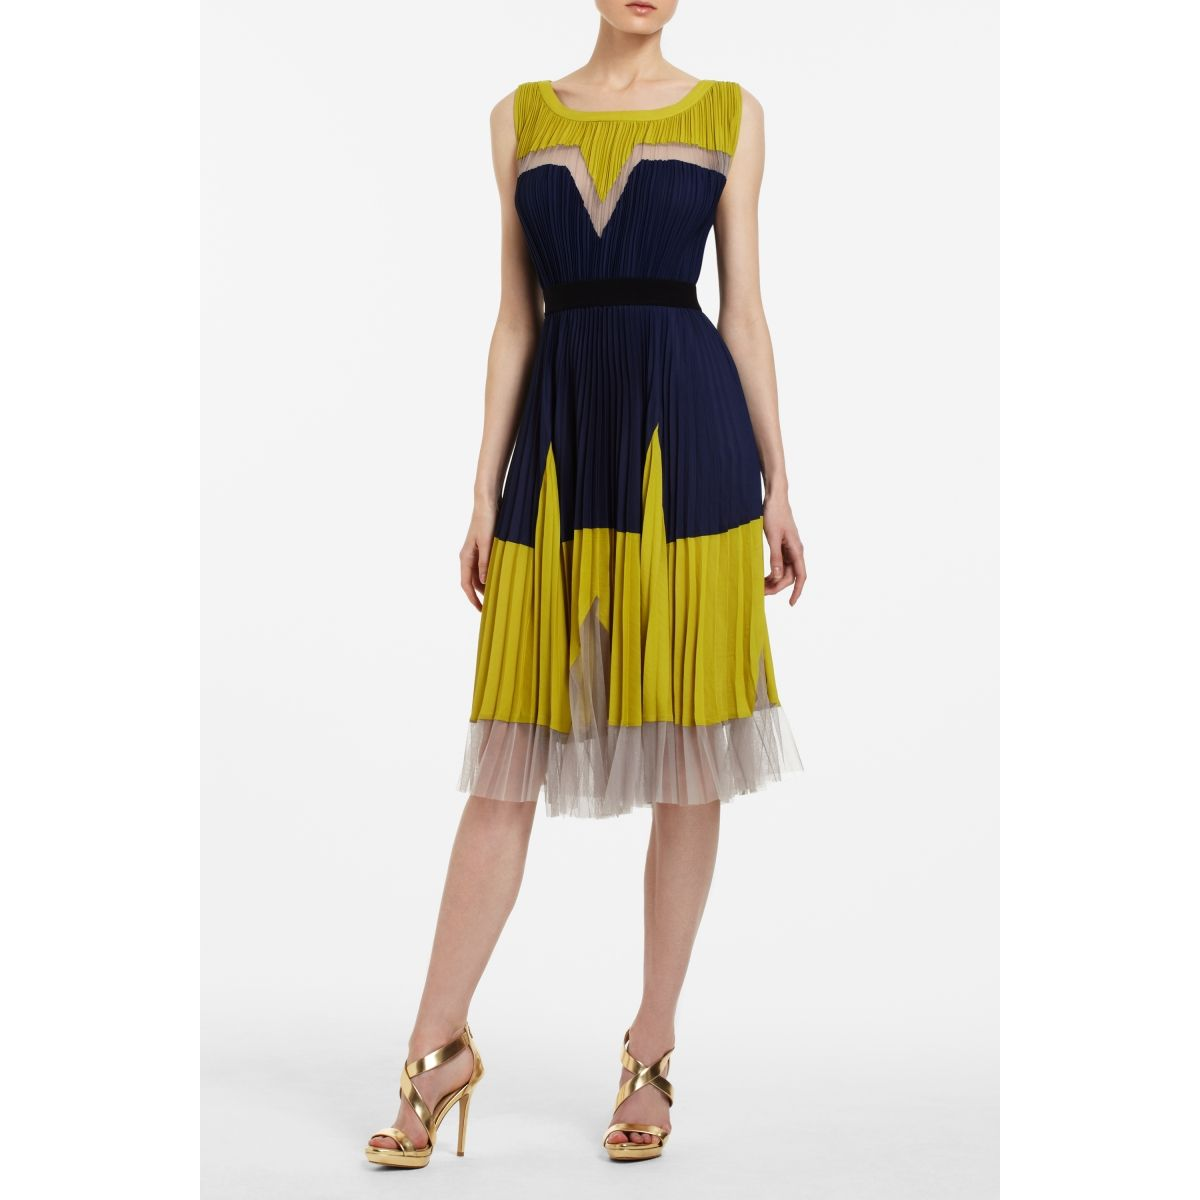 Ugly pretty typical bcbg ium intrigued dresses pinterest